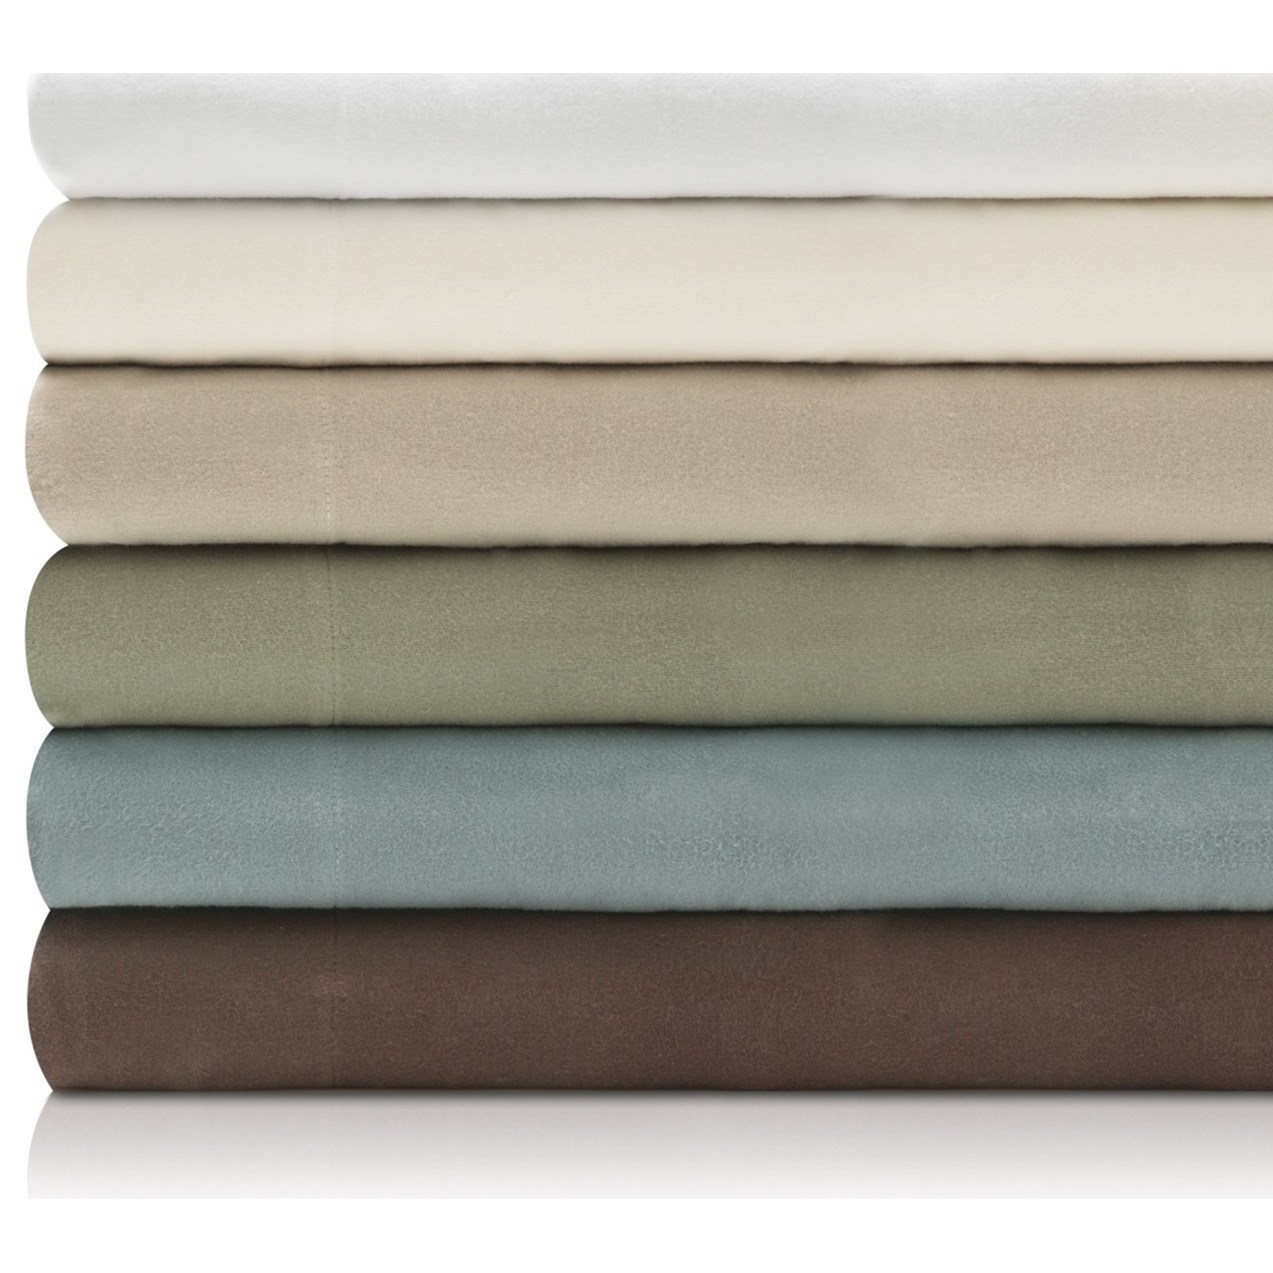 Malouf Portuguese Flannel Full Woven™ Portuguese Flannel Sheet Set - Item Number: WO19FFOAFS